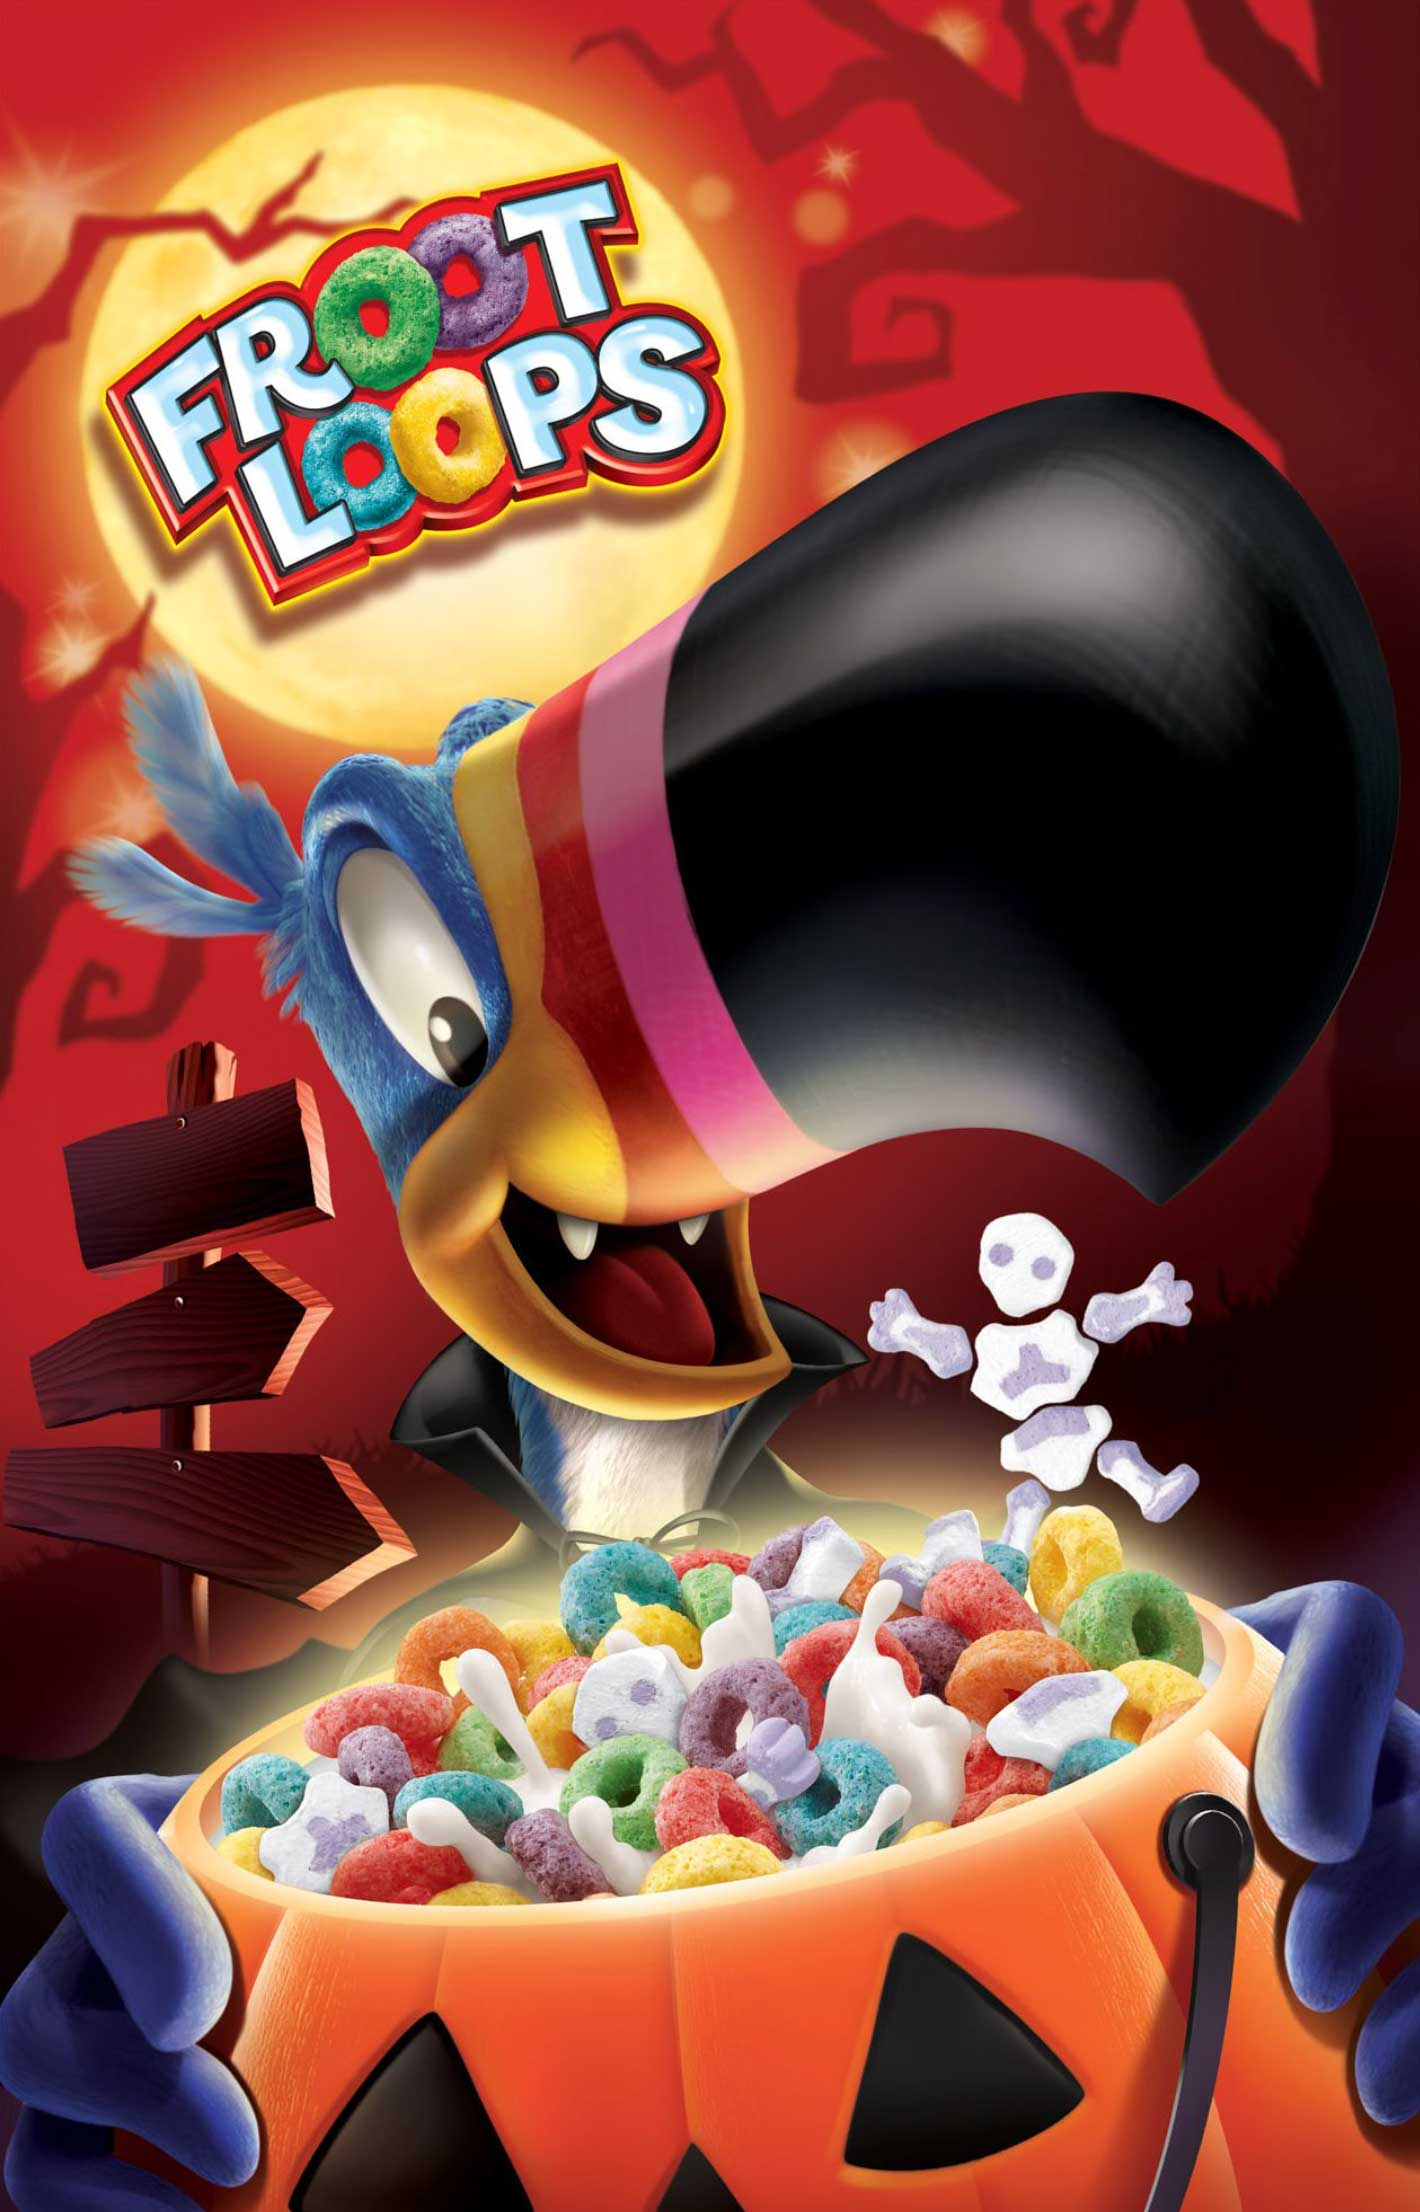 Froot-Loops-Cereal-Toucan-Sam-Character